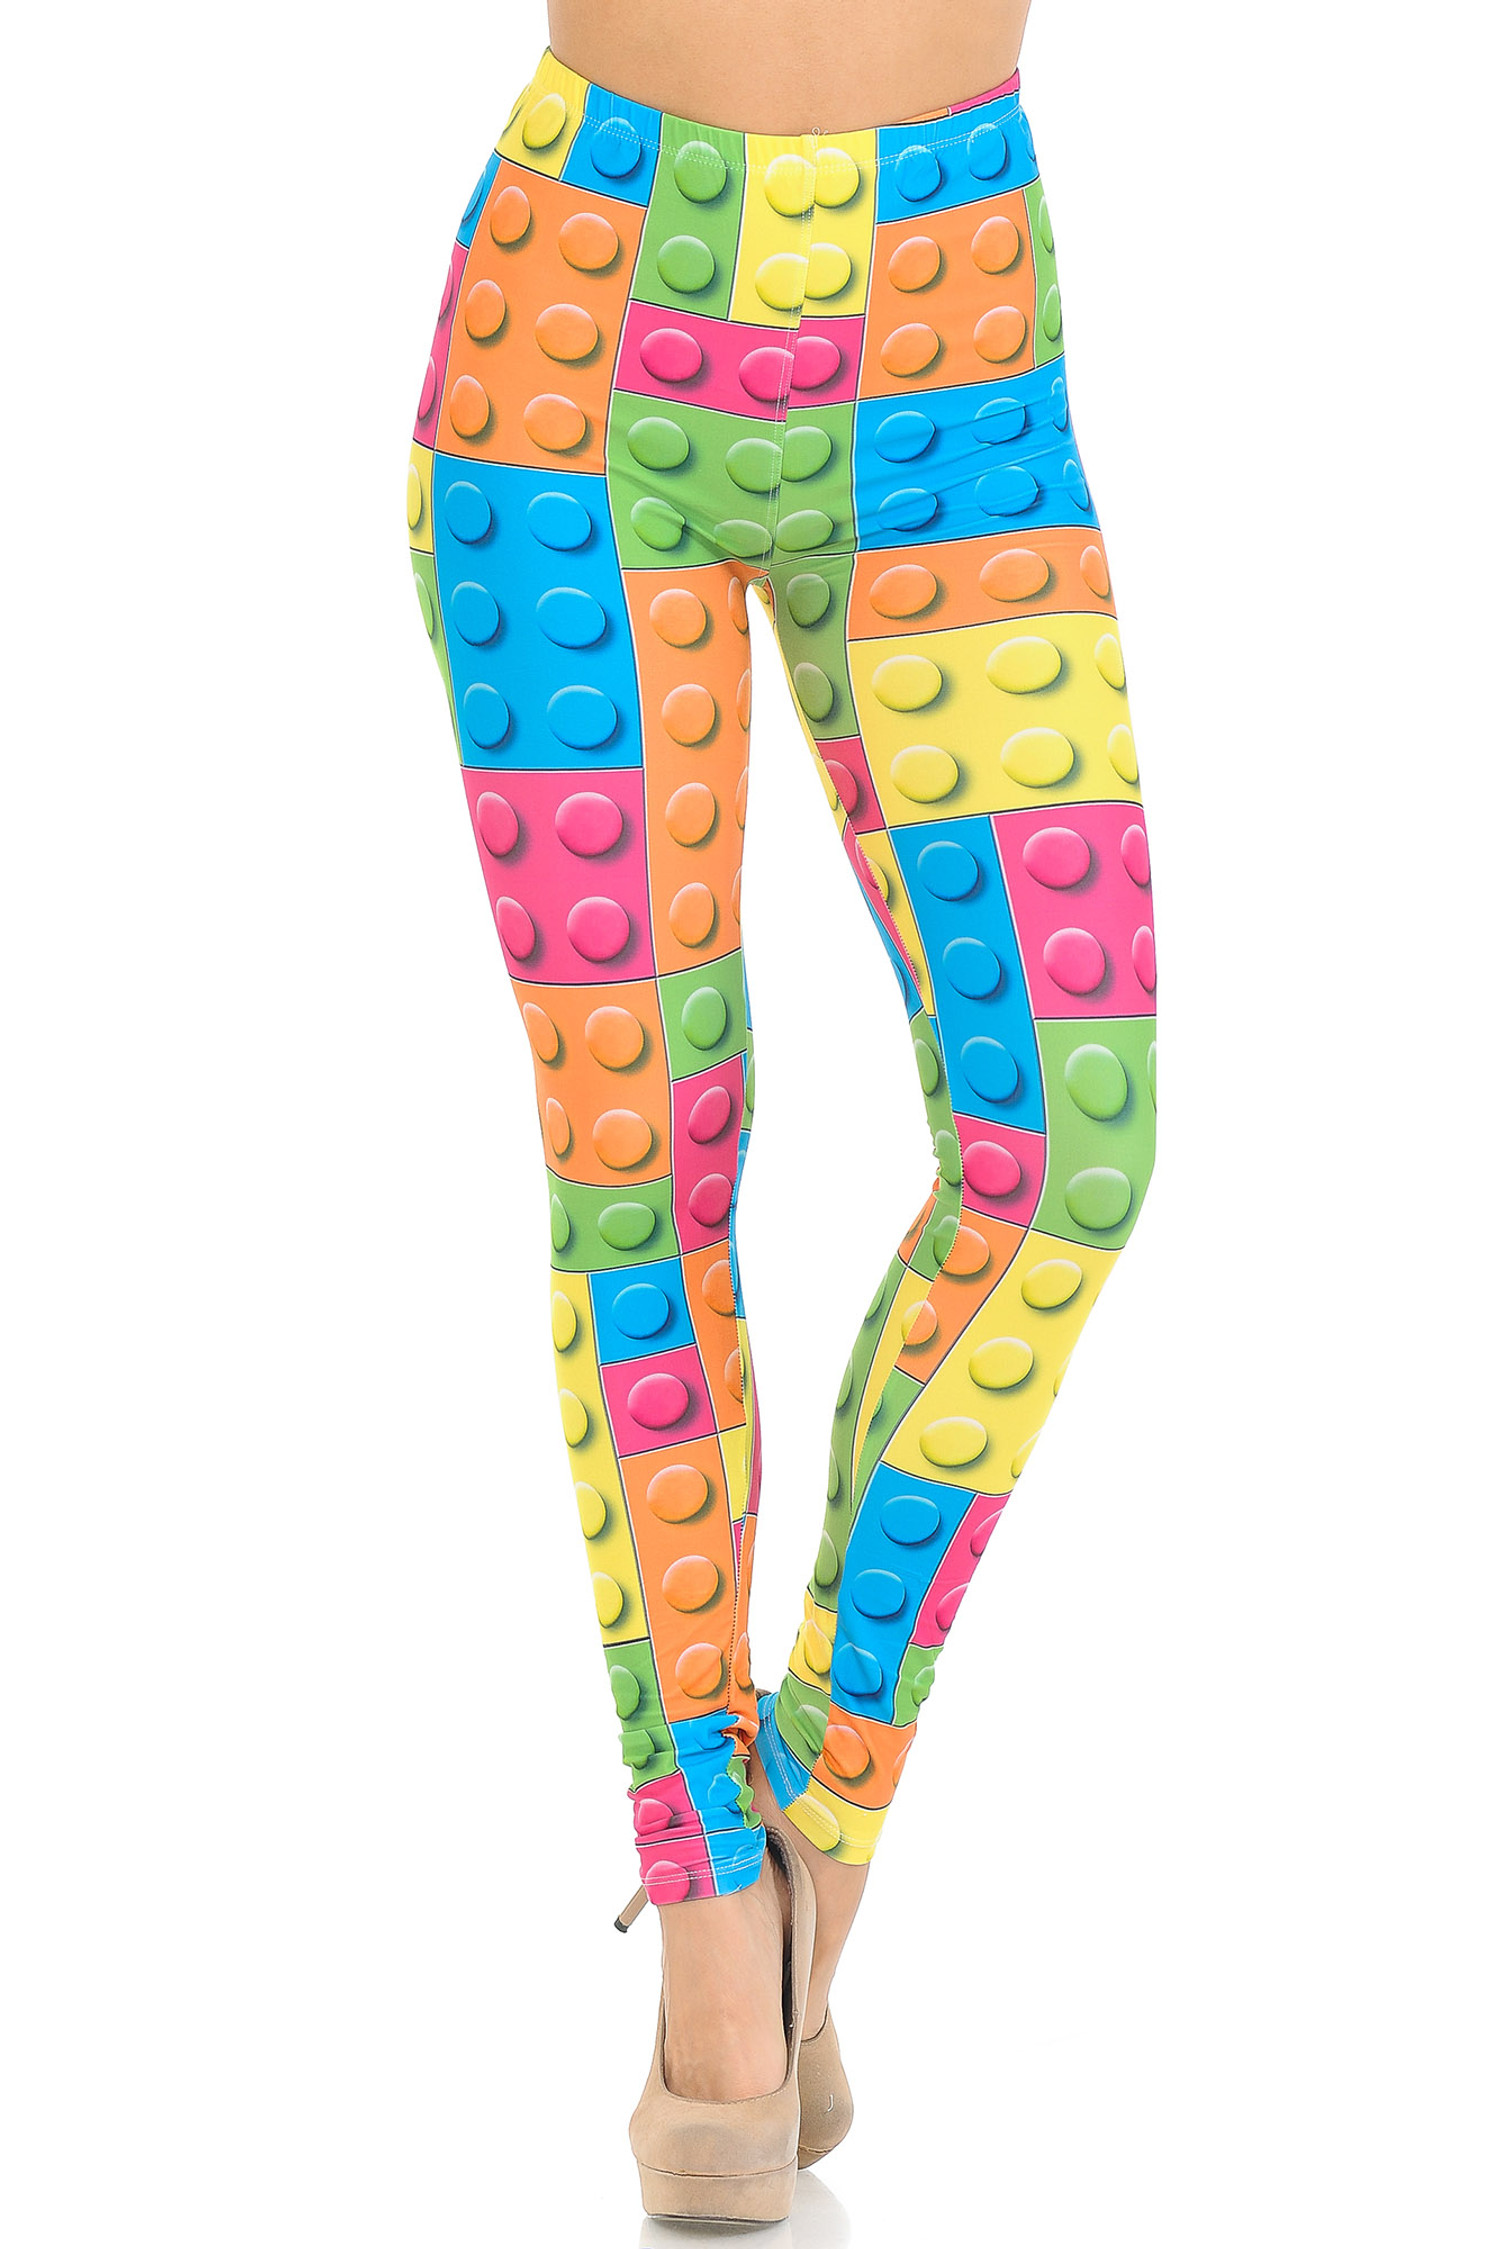 Creamy Soft Lego Extra Small Leggings - USA Fashion™